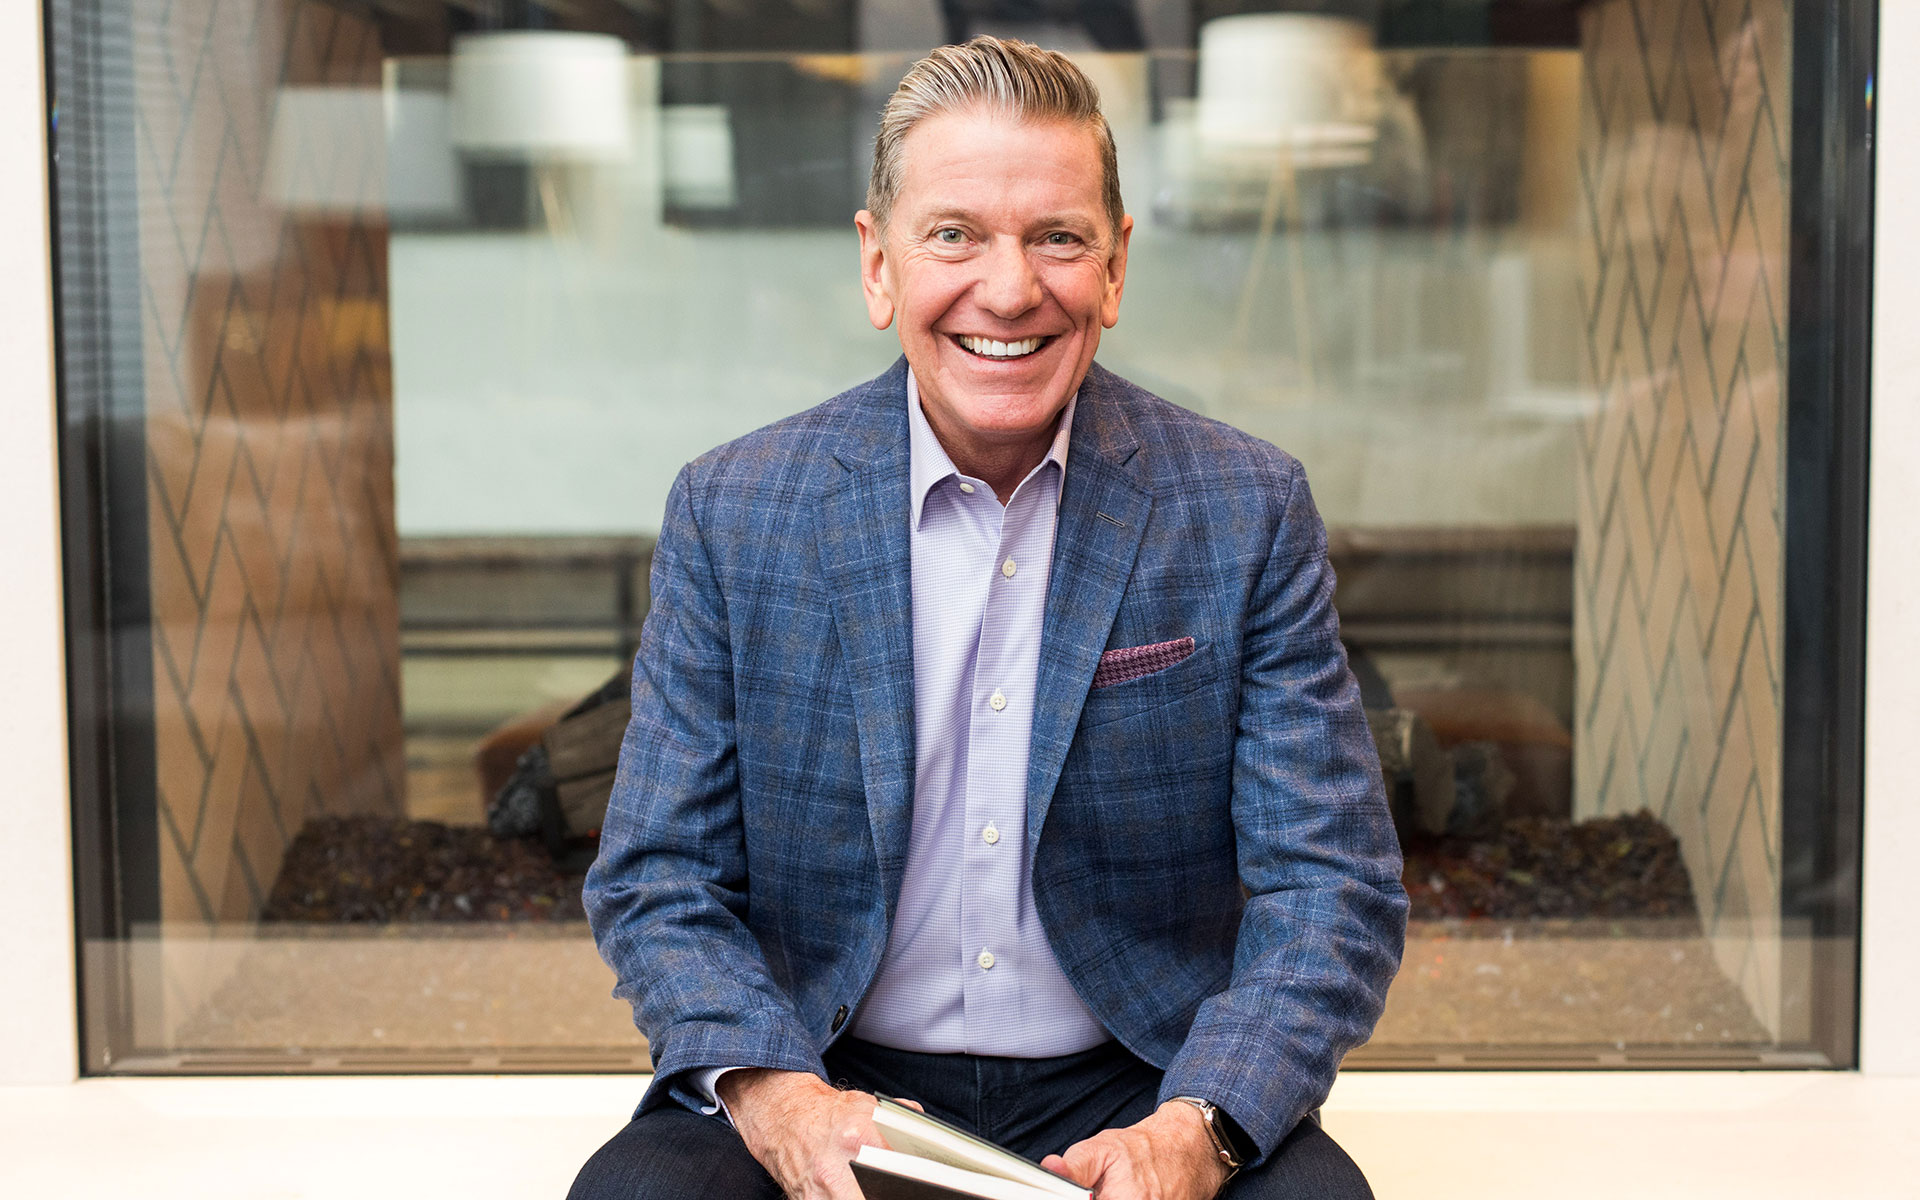 Author & Speaker Michael Hyatt